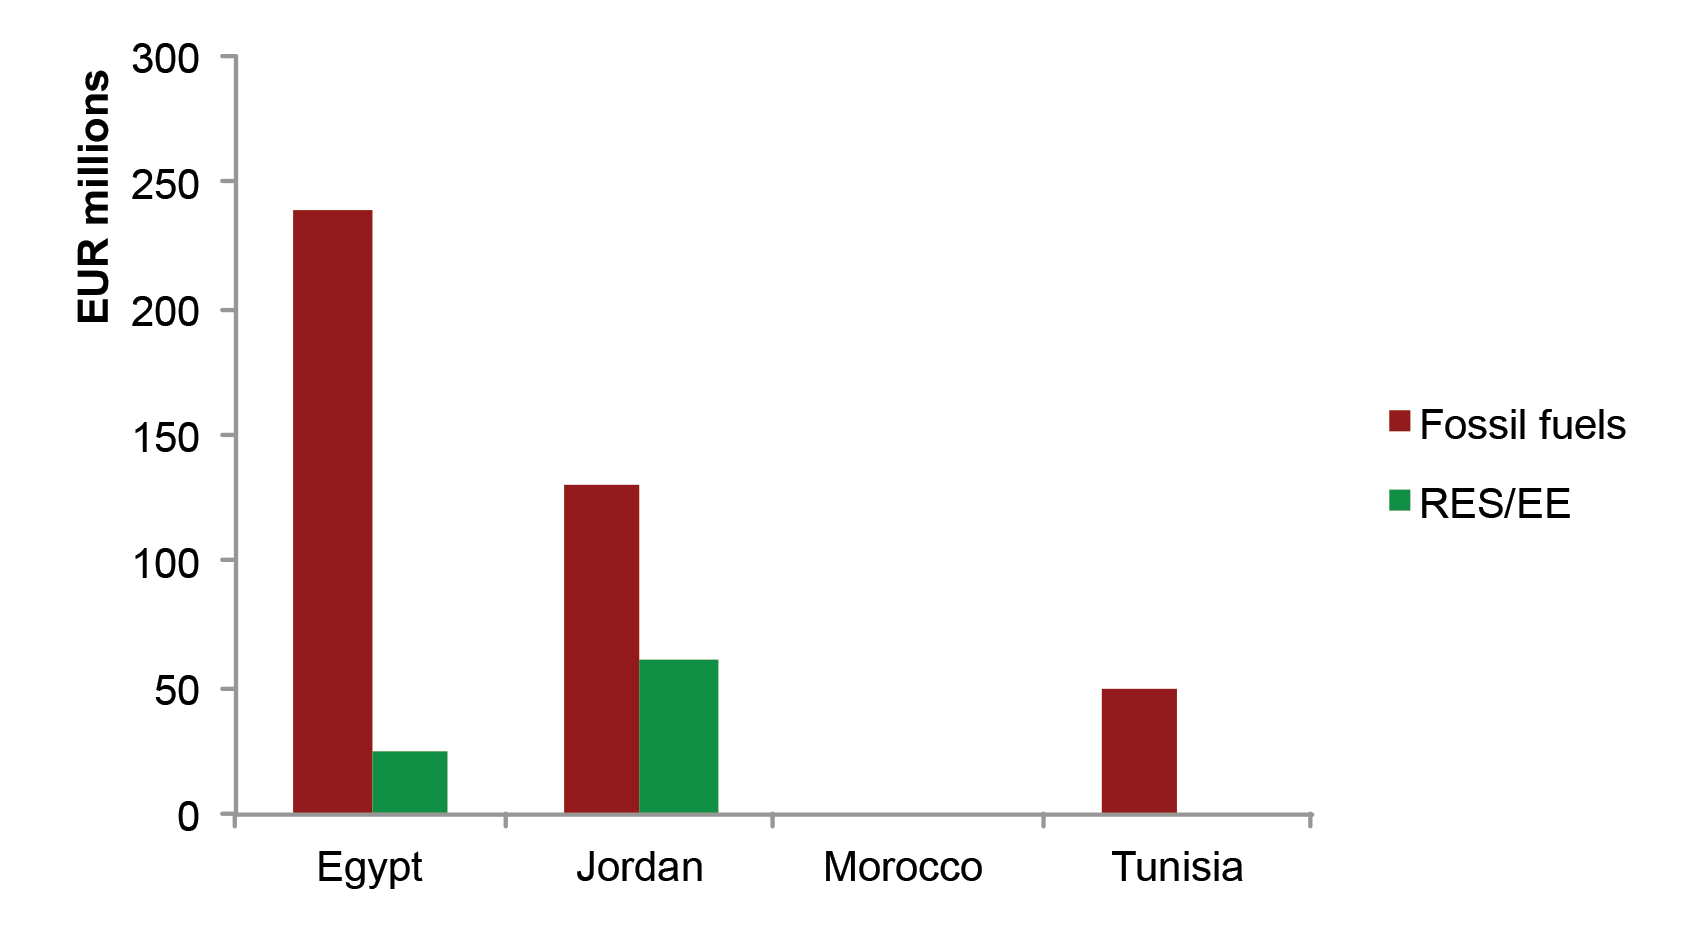 EBRD financing for renewables and energy efficiency versus fossil fuels by country, 2012-2014